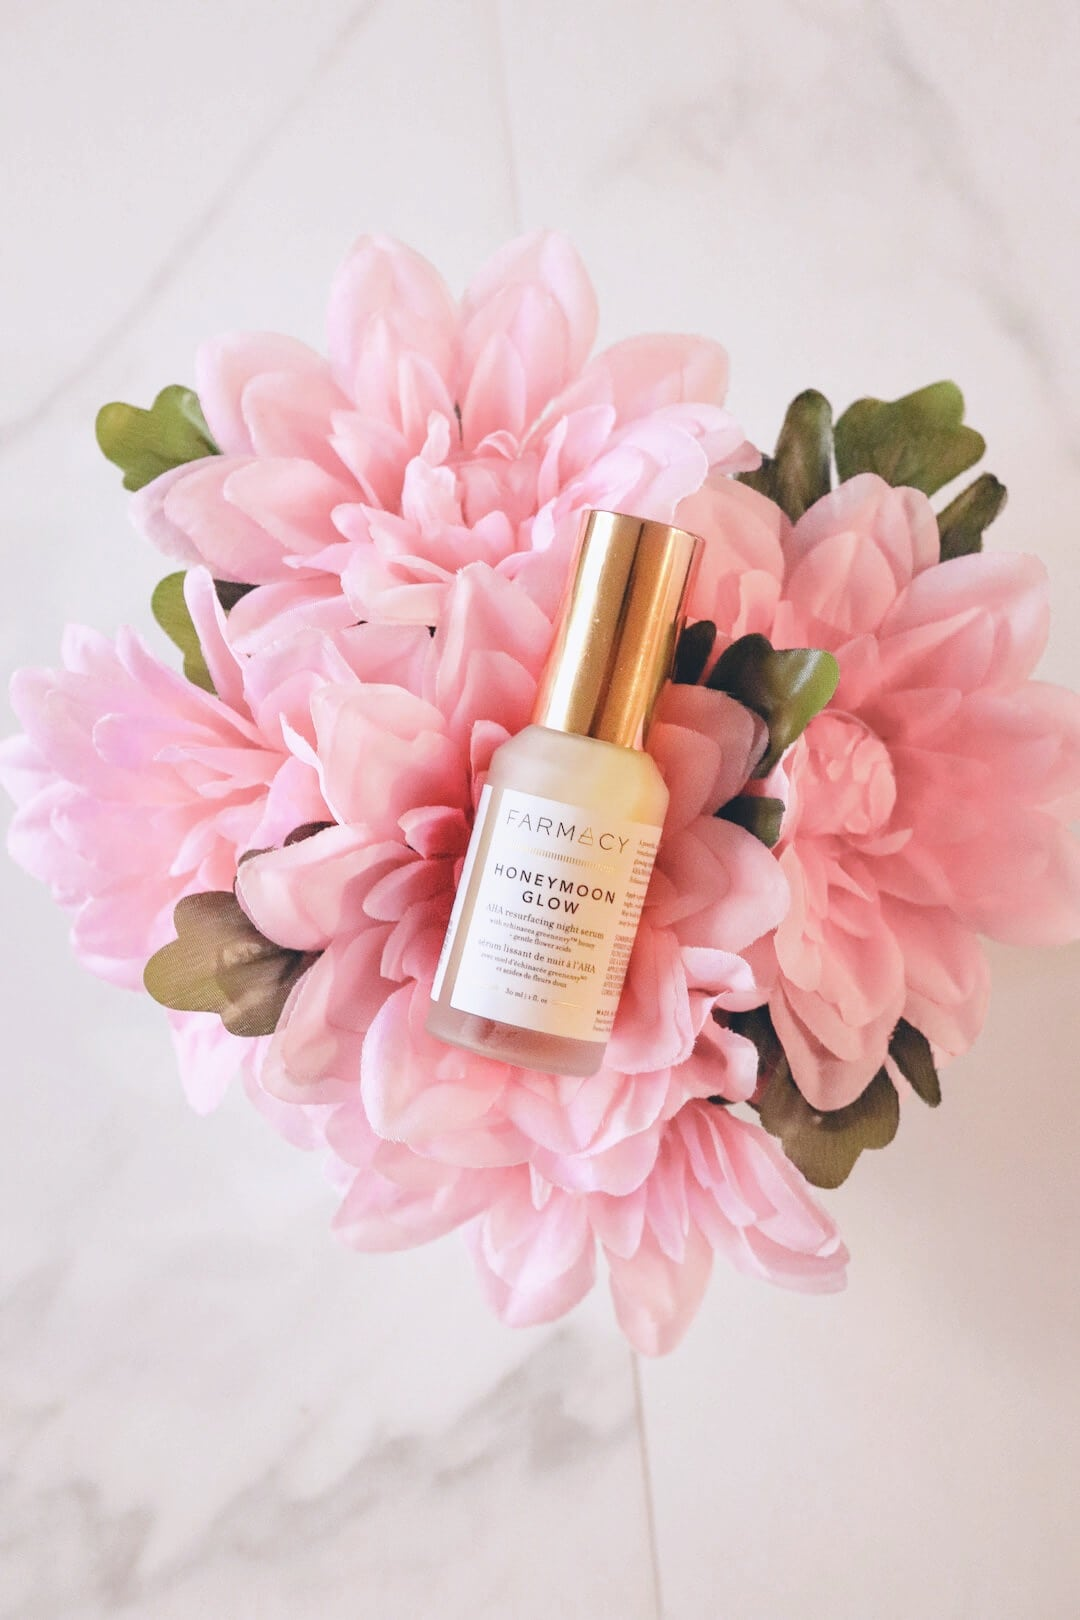 FARMACY-Honeymoon-Glow-Resurfacing-Night-Serum-review